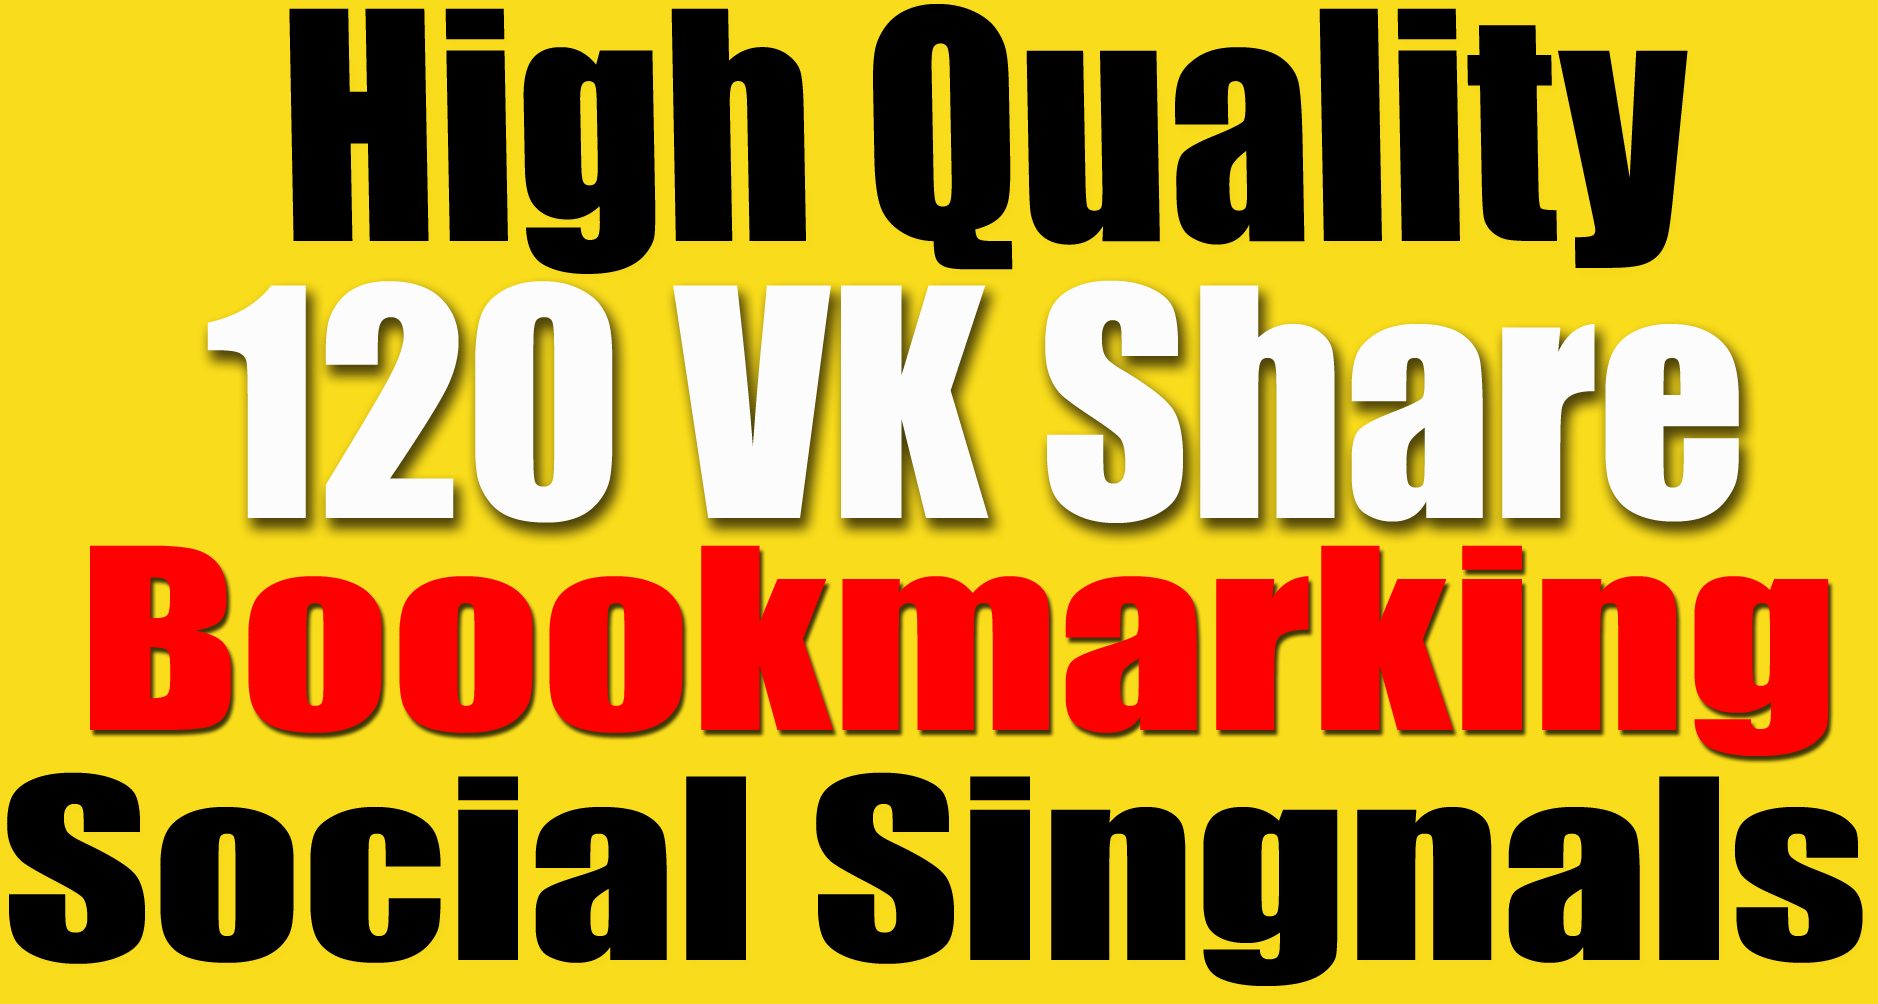 120 Vk Share social bookmarking Real Seo Social Signals Help To Website Traffic